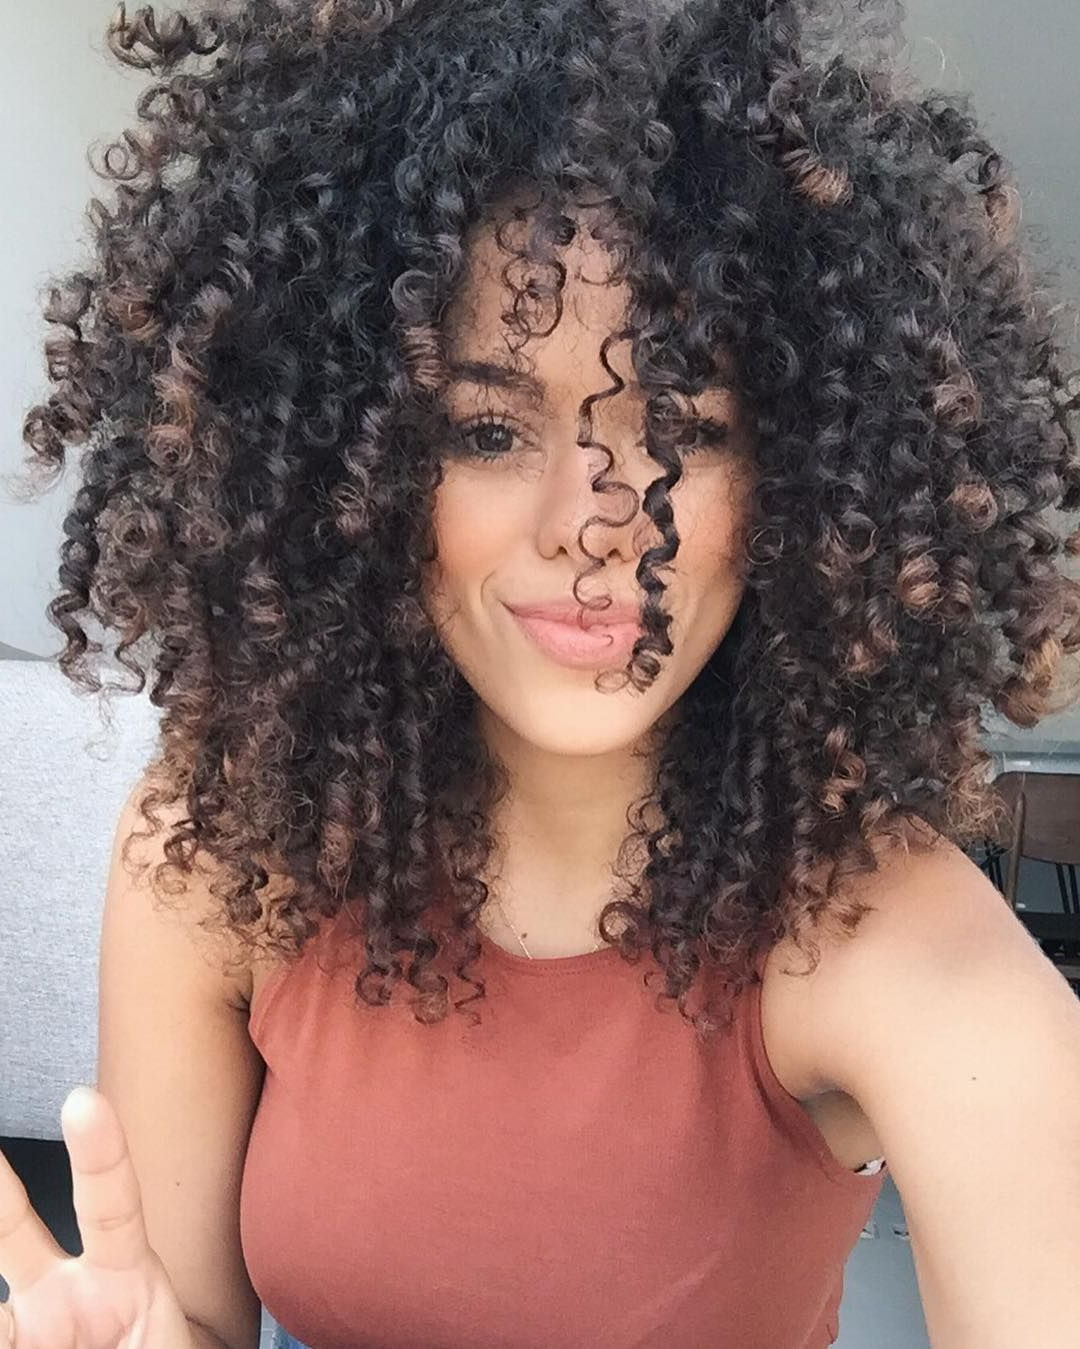 Natural Curly Hairstyle Black Woman | Natural Curly Hairstyle With Curly Short Hairstyles Black Women (View 17 of 25)